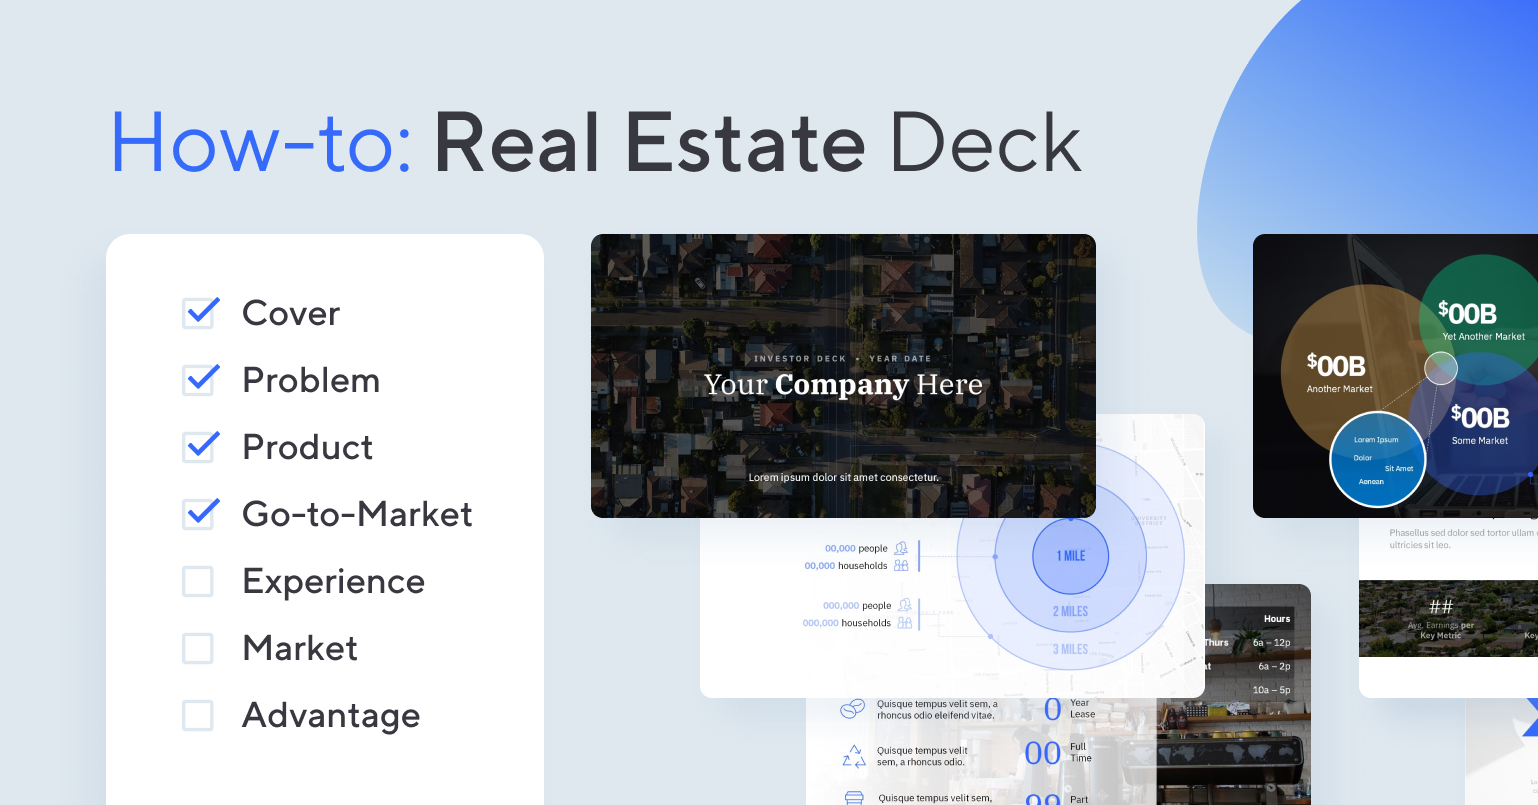 How-to design a Real Estate deck